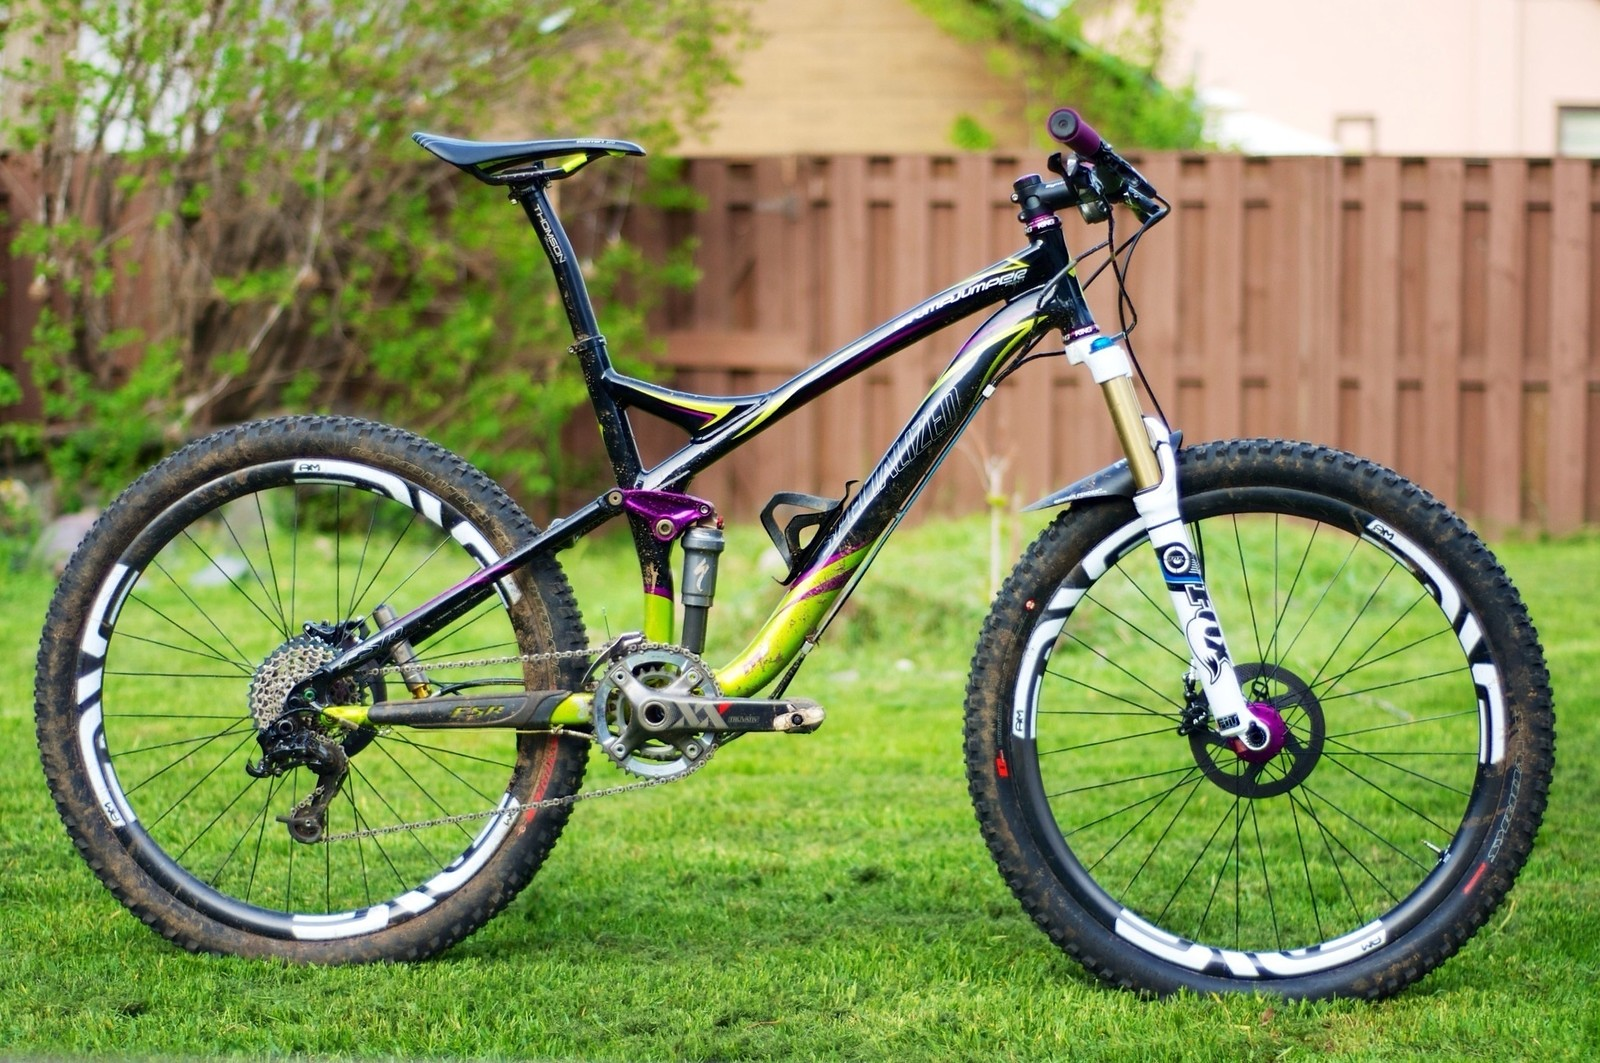 2009 specialized stumpjumper fsr comp review